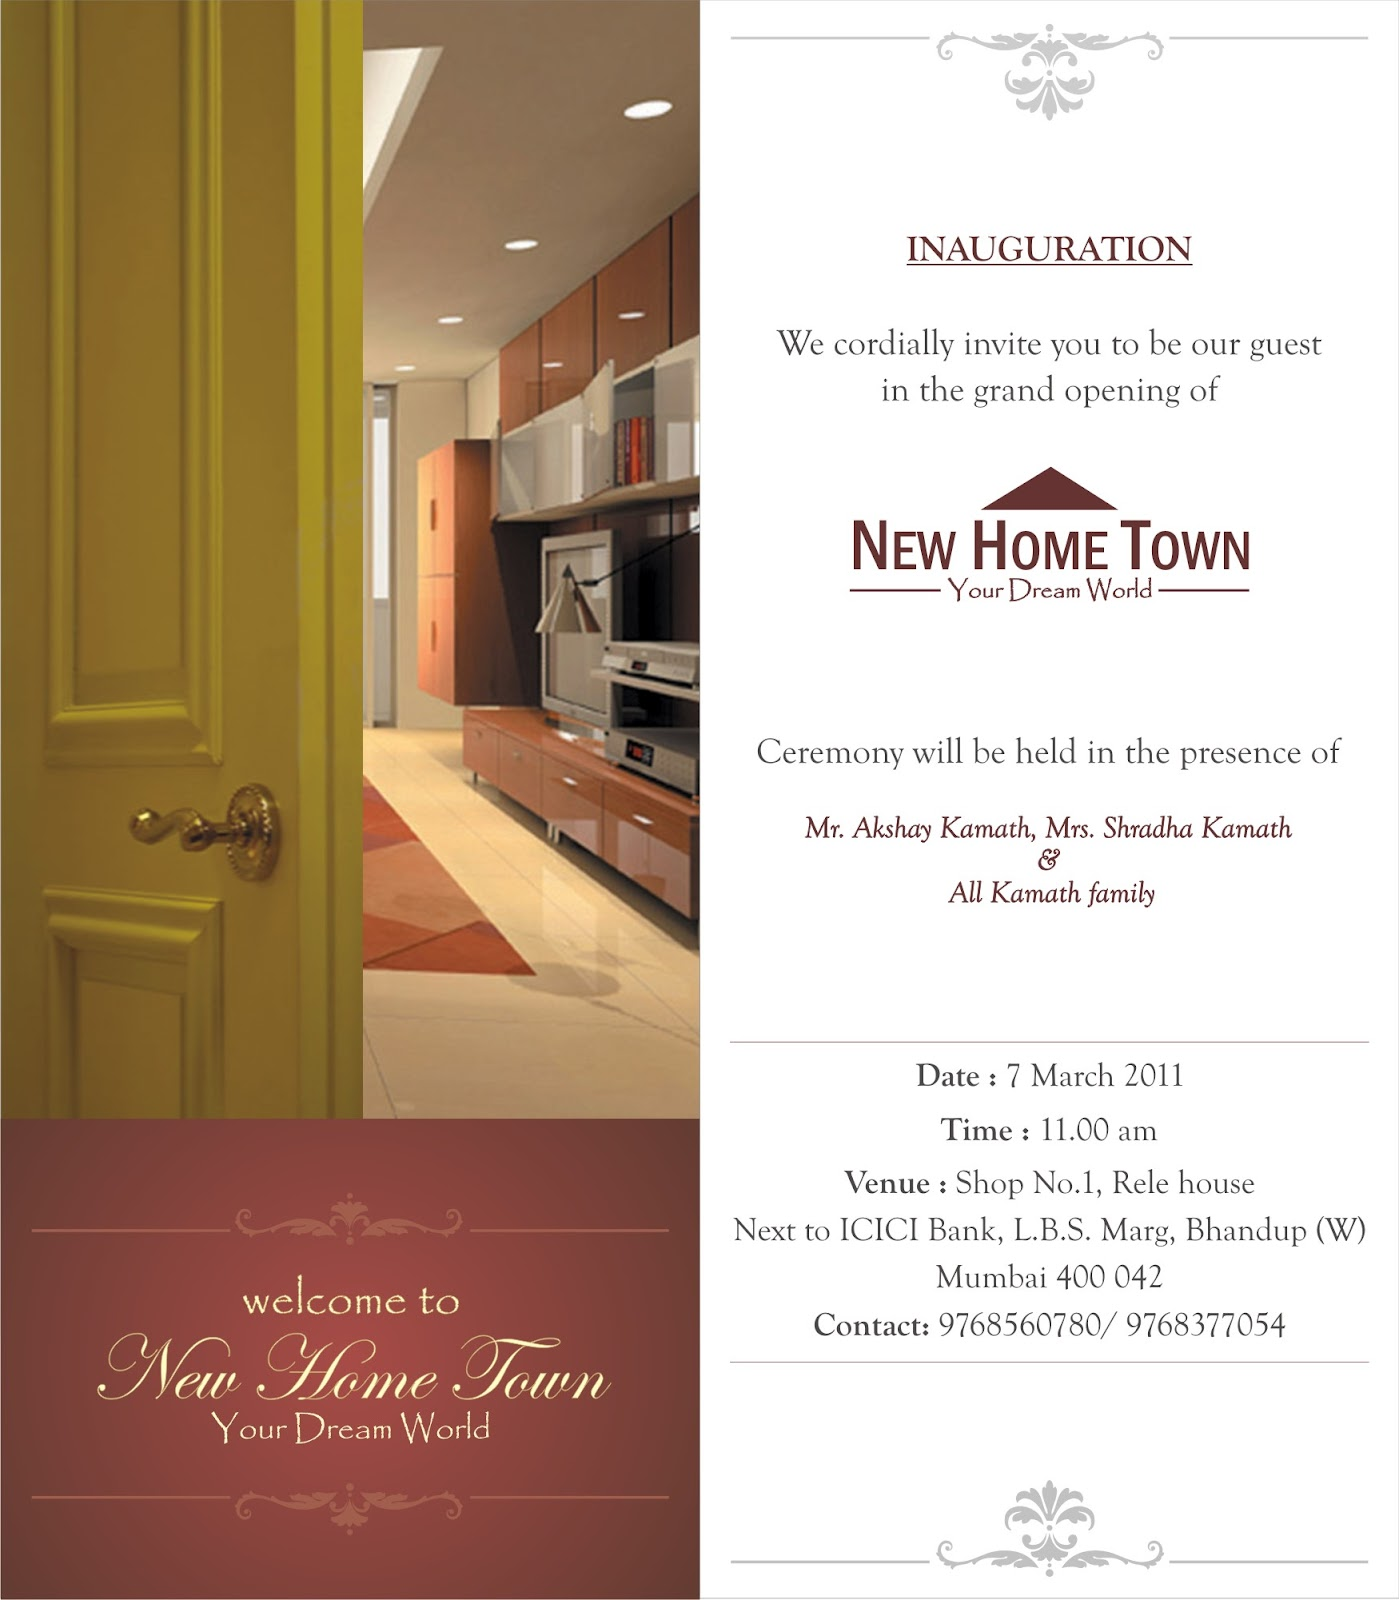 New home invitation card paperinvite invitation card for new home town inauguration priyankaworks stopboris Images